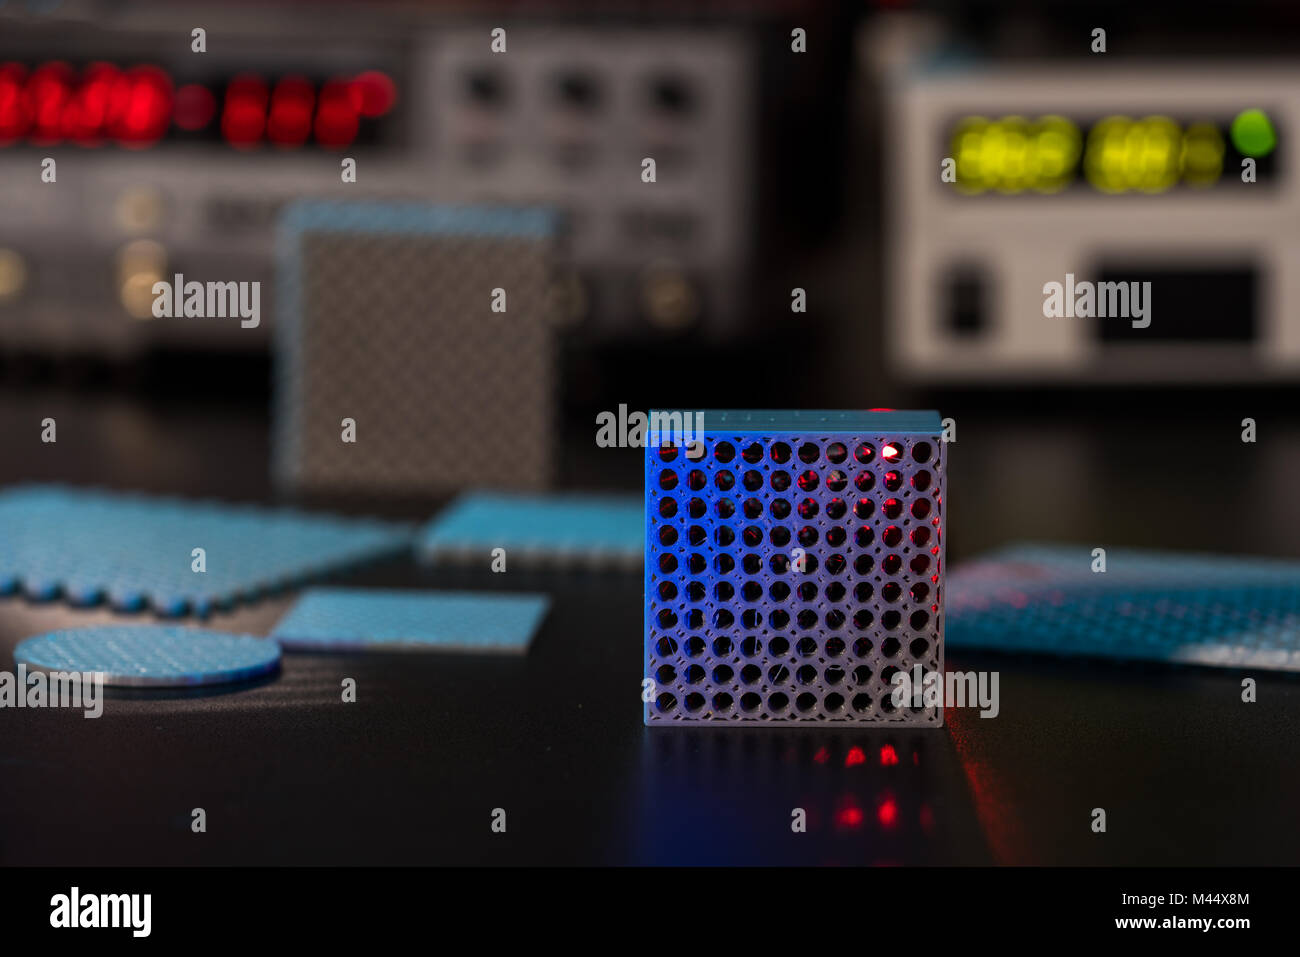 Prototype of nanostructured metamaterials in lab - Stock Image